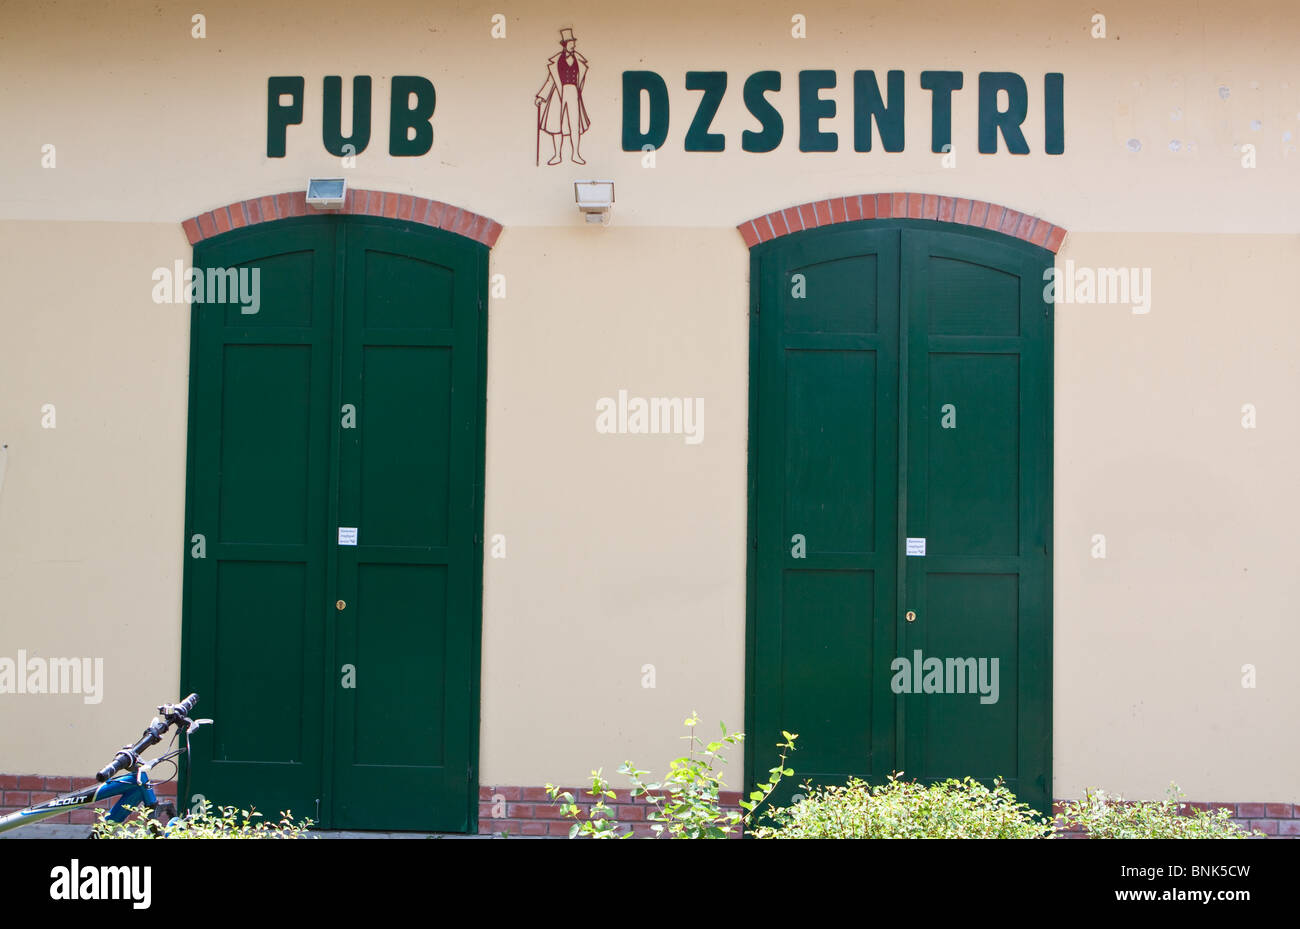 Humorous Pub Name in Siofok Lake Balaton Hungary - Stock Image